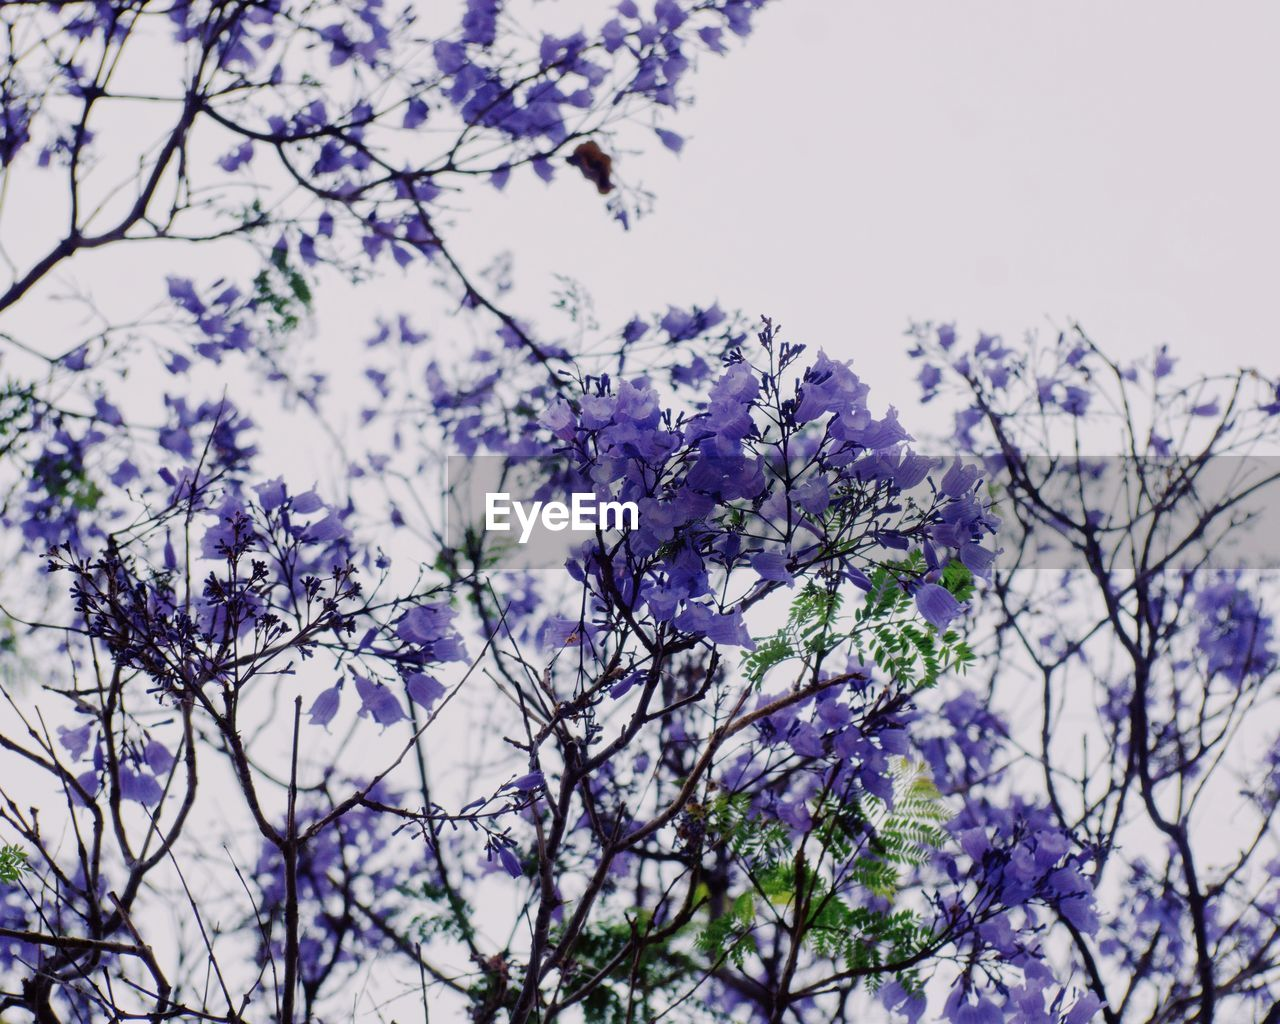 flower, nature, branch, beauty in nature, fragility, tree, blossom, springtime, growth, purple, low angle view, freshness, no people, outdoors, day, clear sky, close-up, blooming, sky, flower head